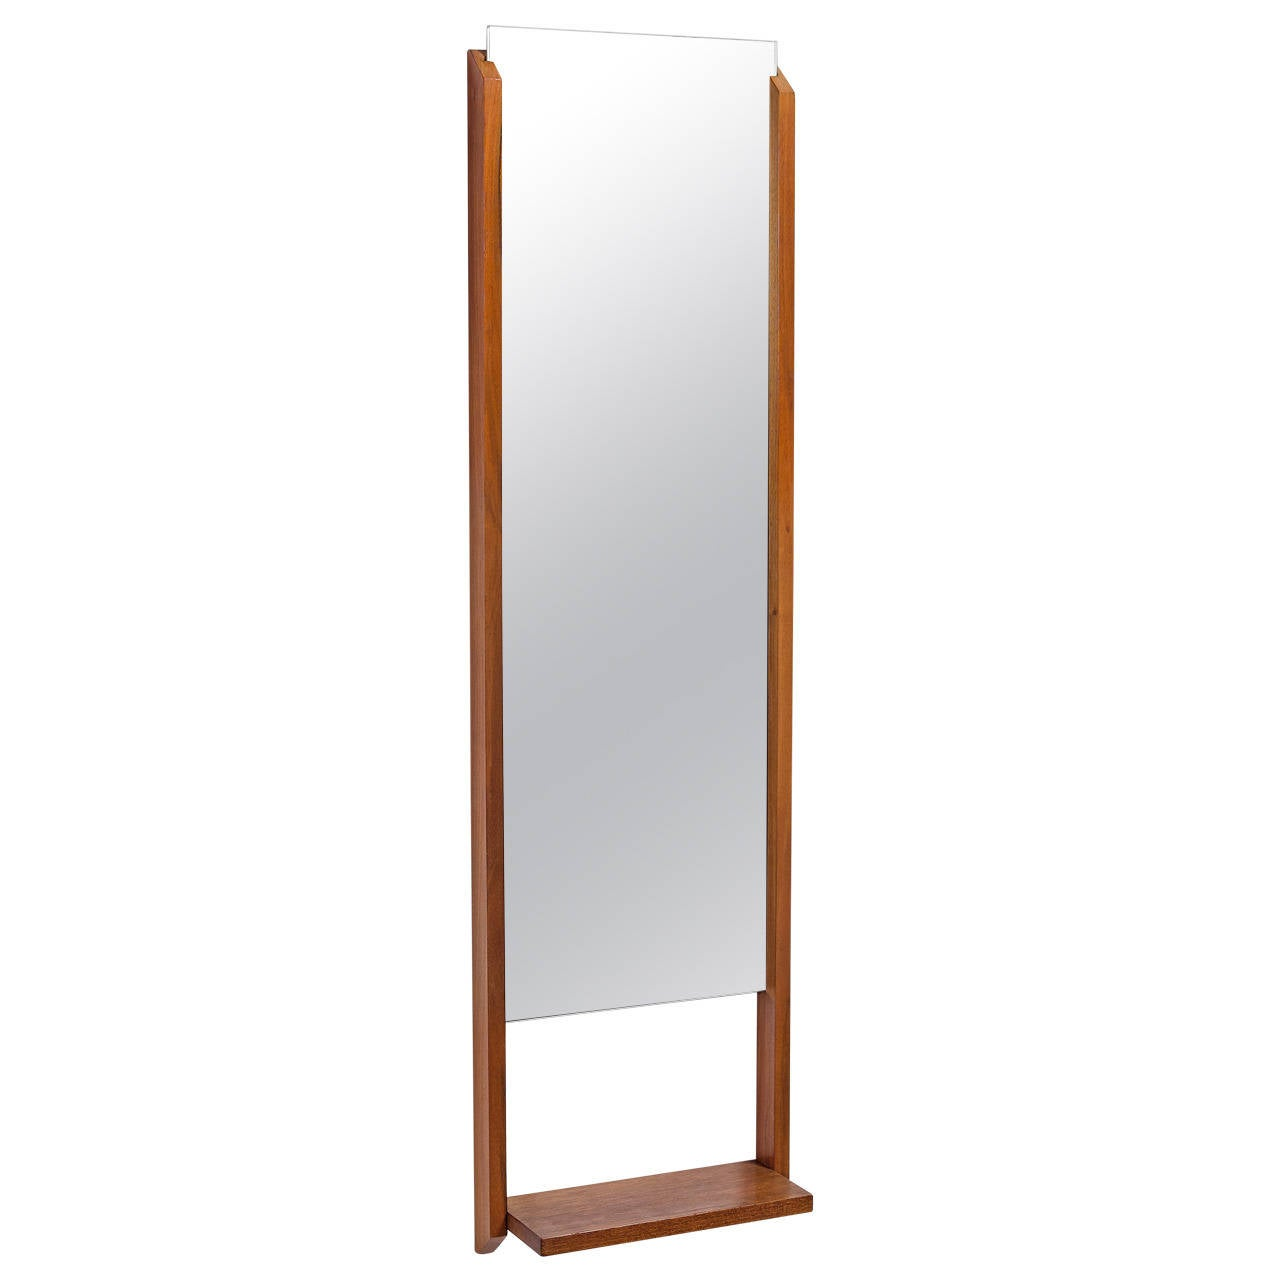 Pier glass mirror from the apartment of franz hagenauer at for Glass floor mirror